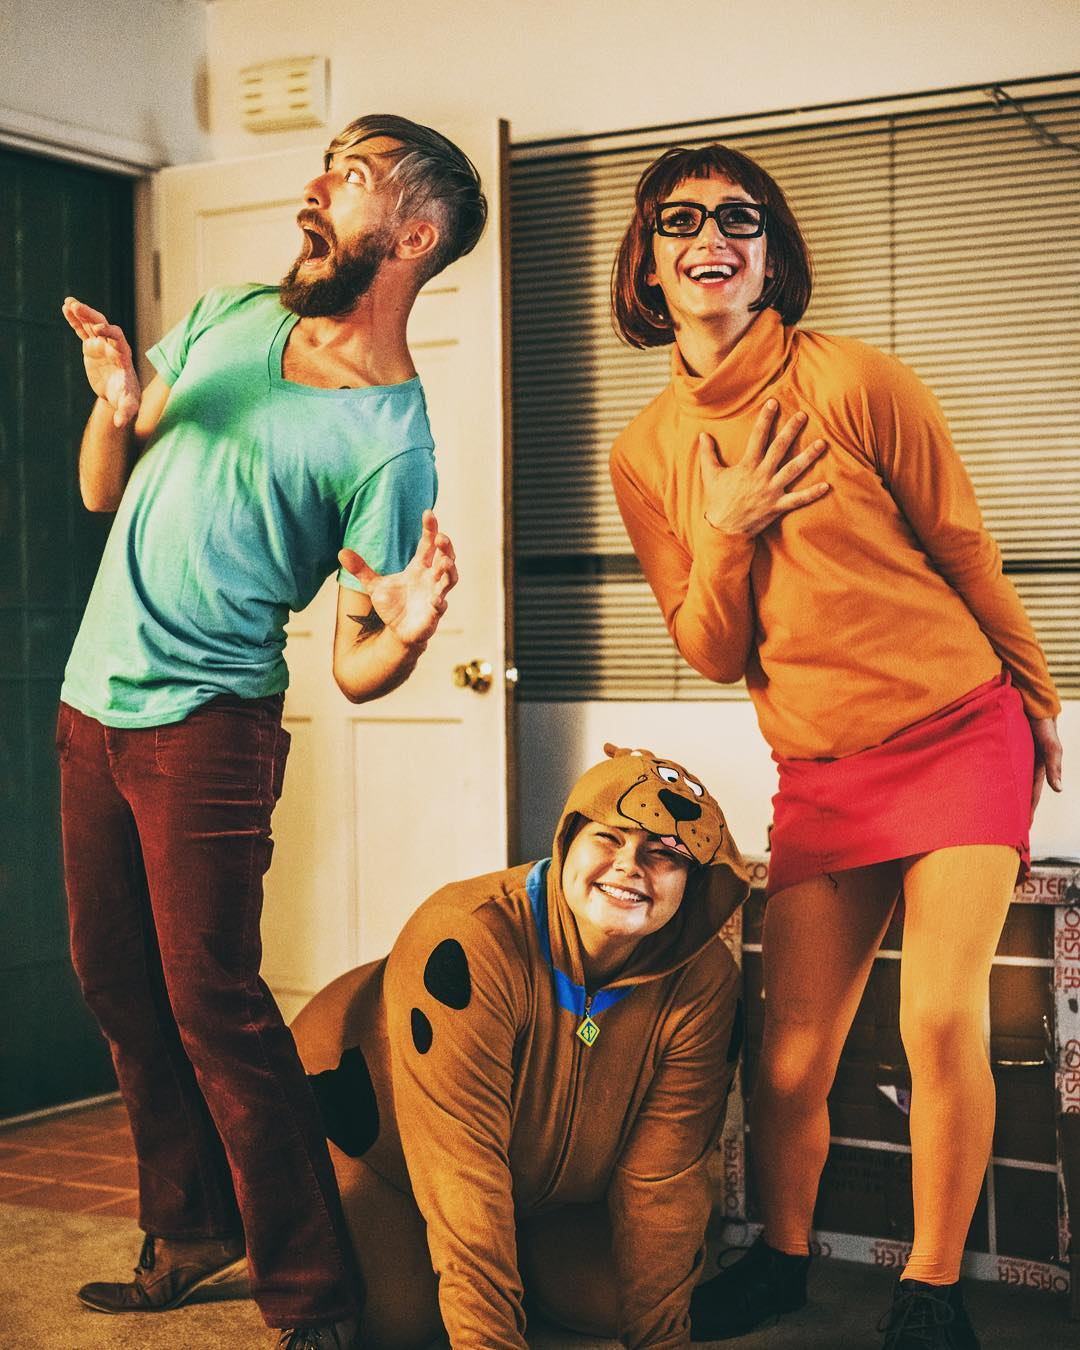 Scooby Doo & The Mystery Gang for Best Trio Halloween Costumes